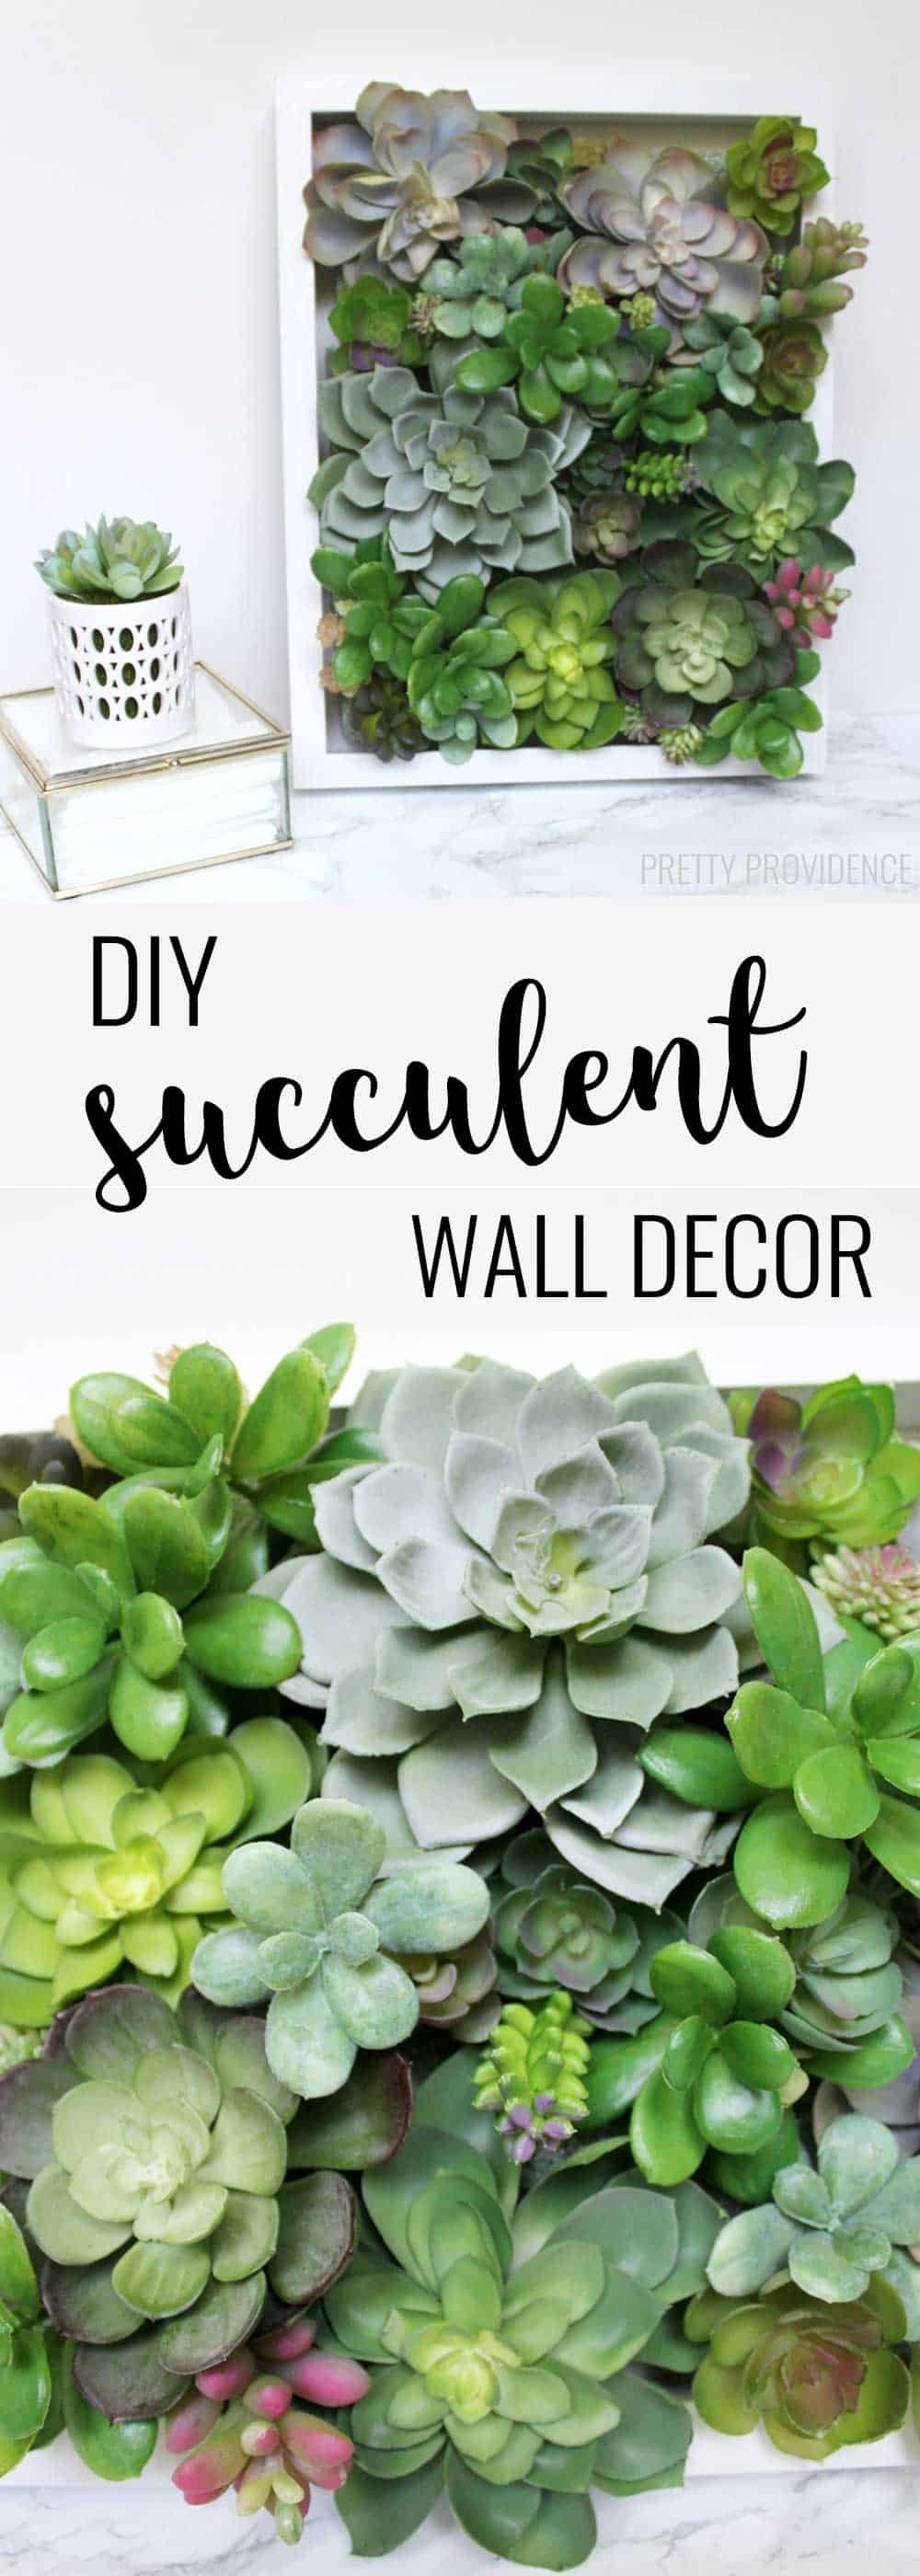 I love decorating with succulents and this easy succulent shadow box decor is perfect! So pretty!